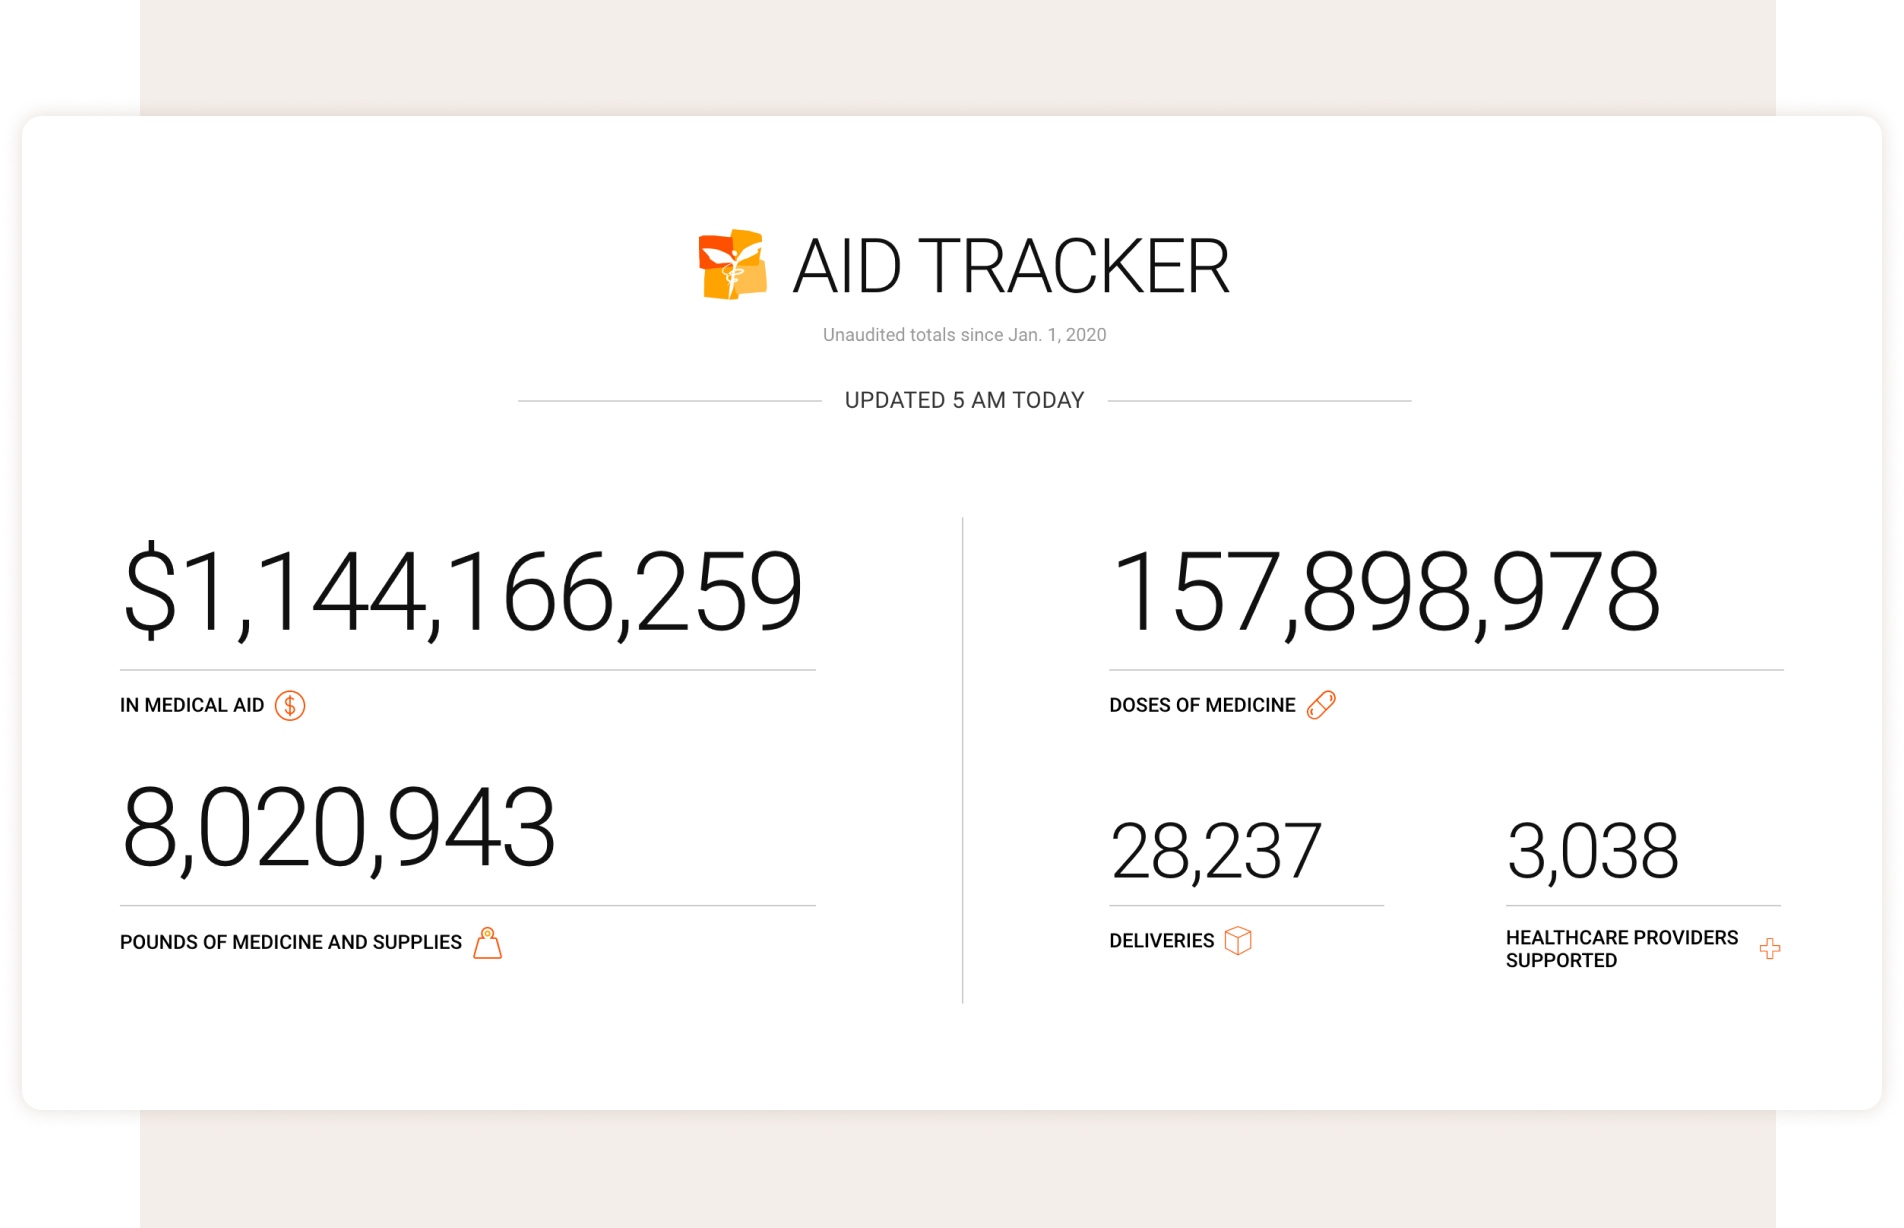 "The Direct Relief aid tracker with large bold statistics updated ""at 5 am today"" - $1,144,166,259 in medical aid, 157,898,978 doses of medicine, 8,020,943 pounds of medicine and supplies, 28,237 deliveries, and 3,038 healthcare providers supported"